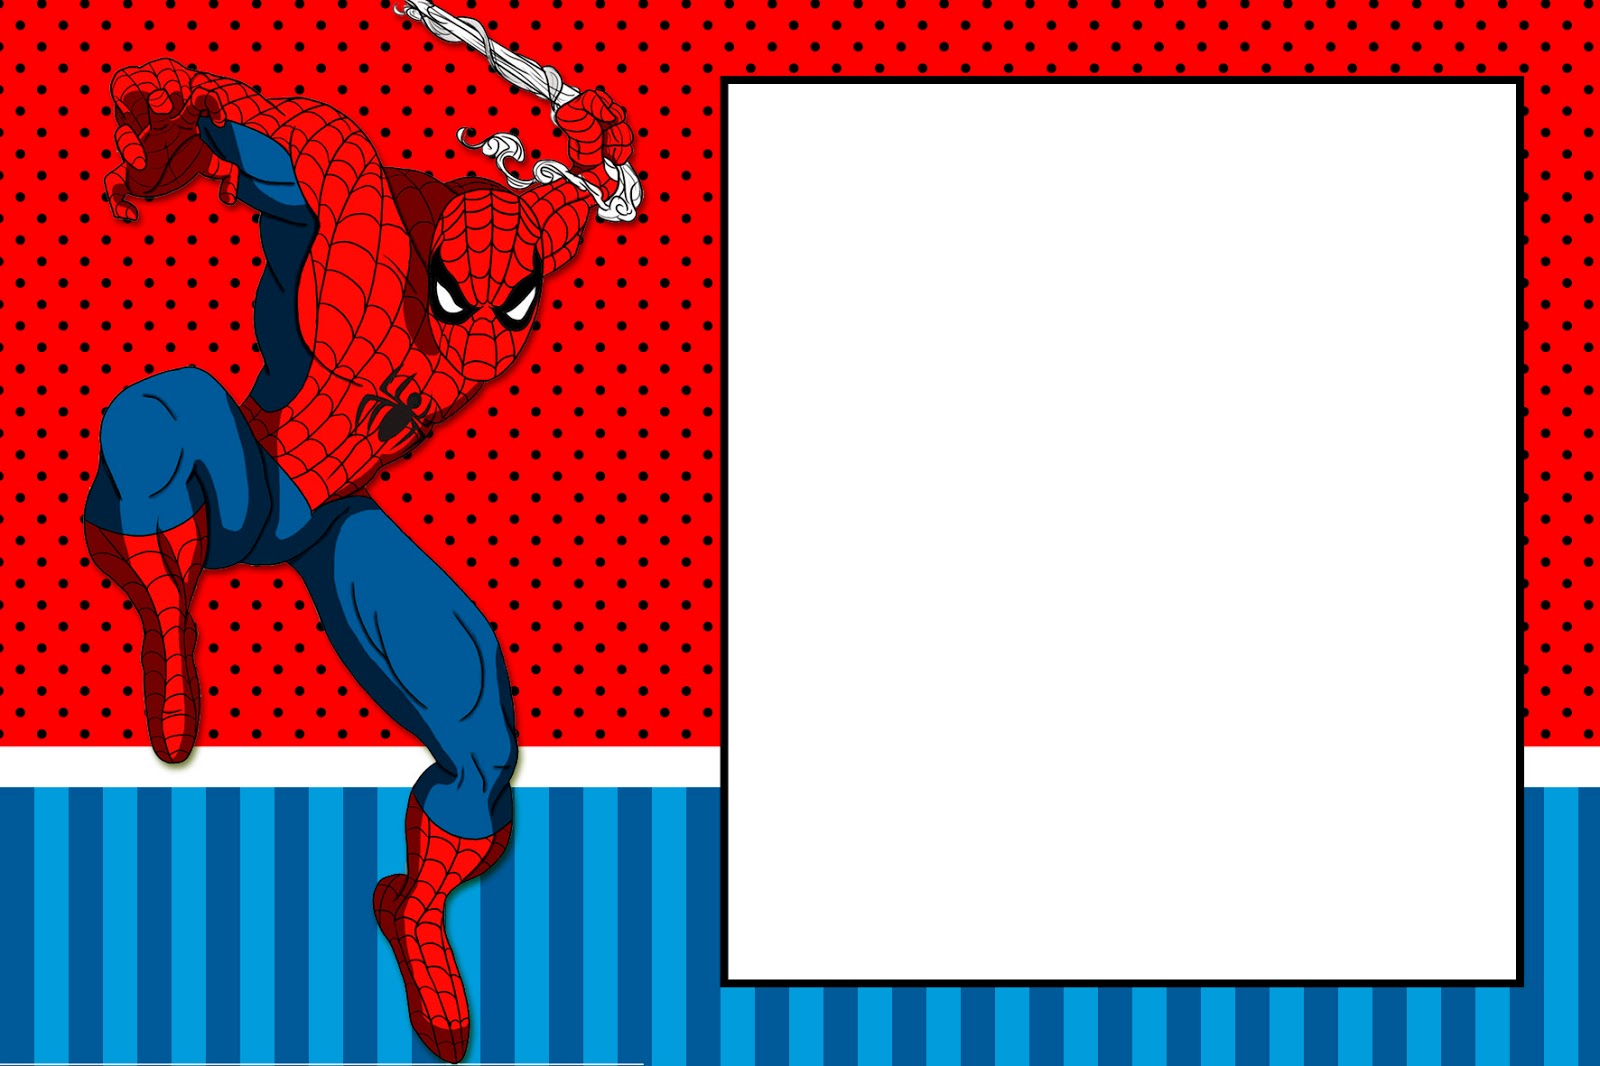 Spiderman Party: Free Printable Invitations. - Oh My Fiesta! for Geeks